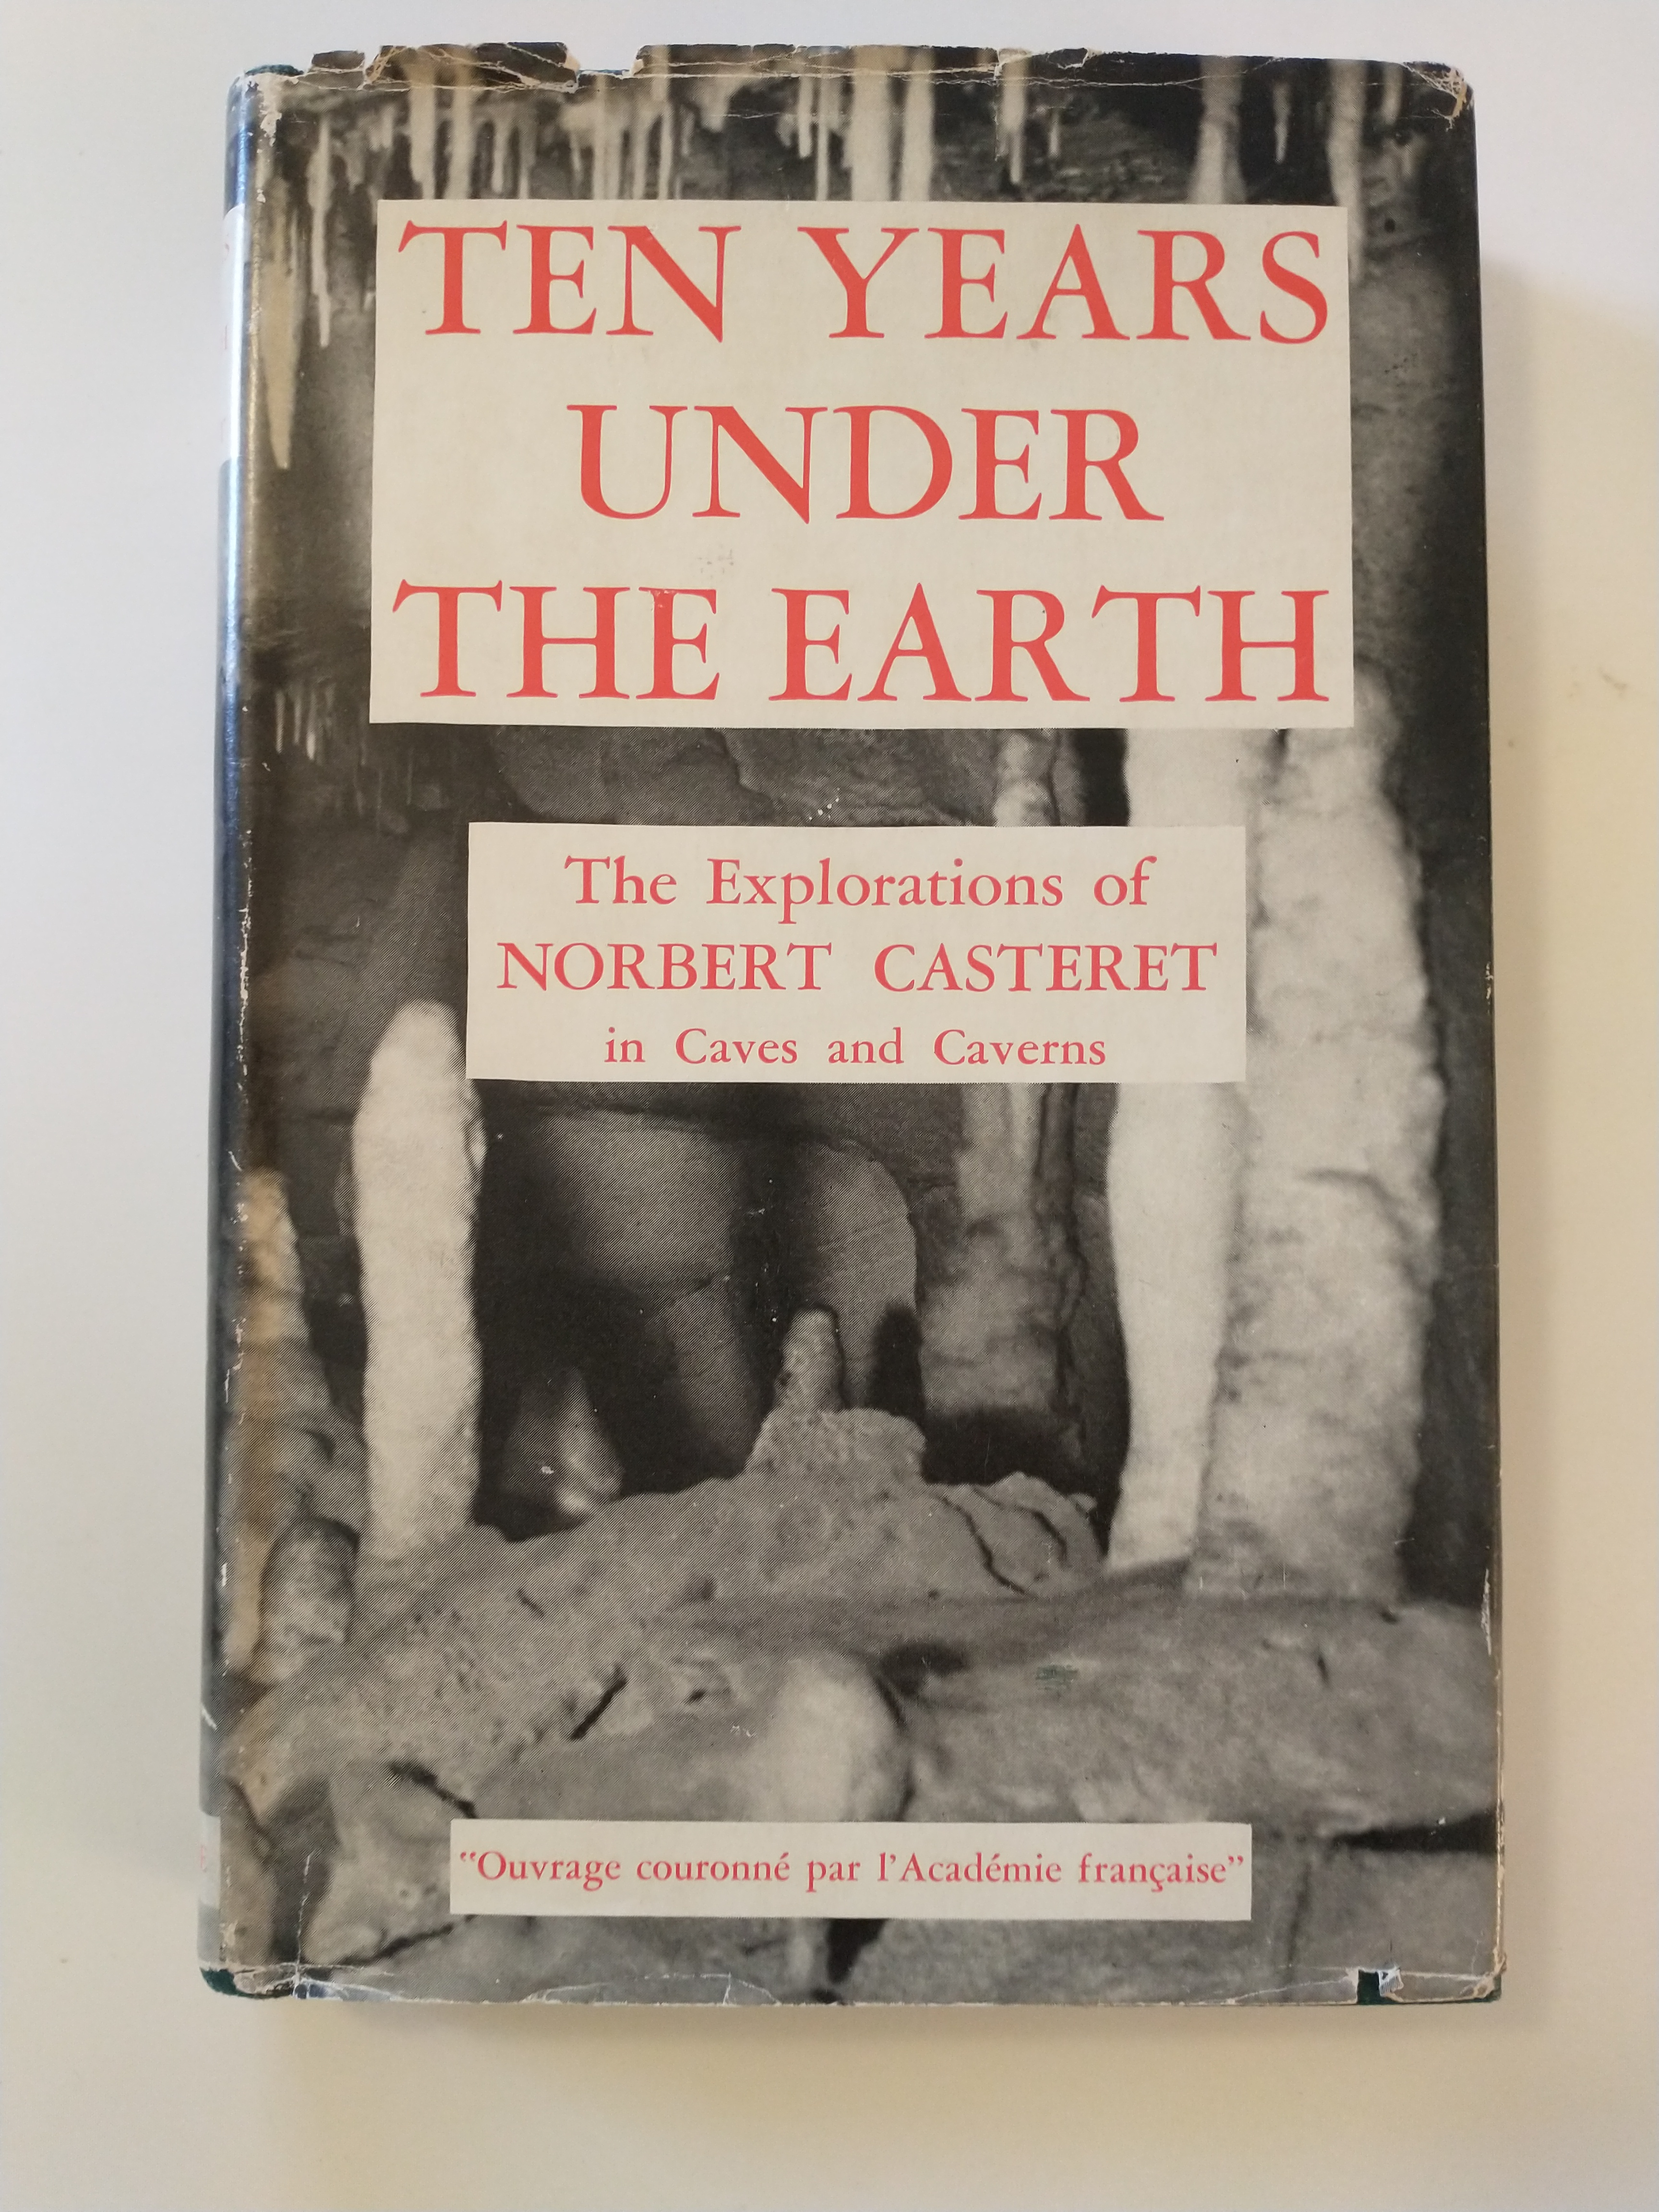 Image for TEN YEARS UNDER THE EARTH   THE EXPLORATIONS OF NORBERT CASTERET